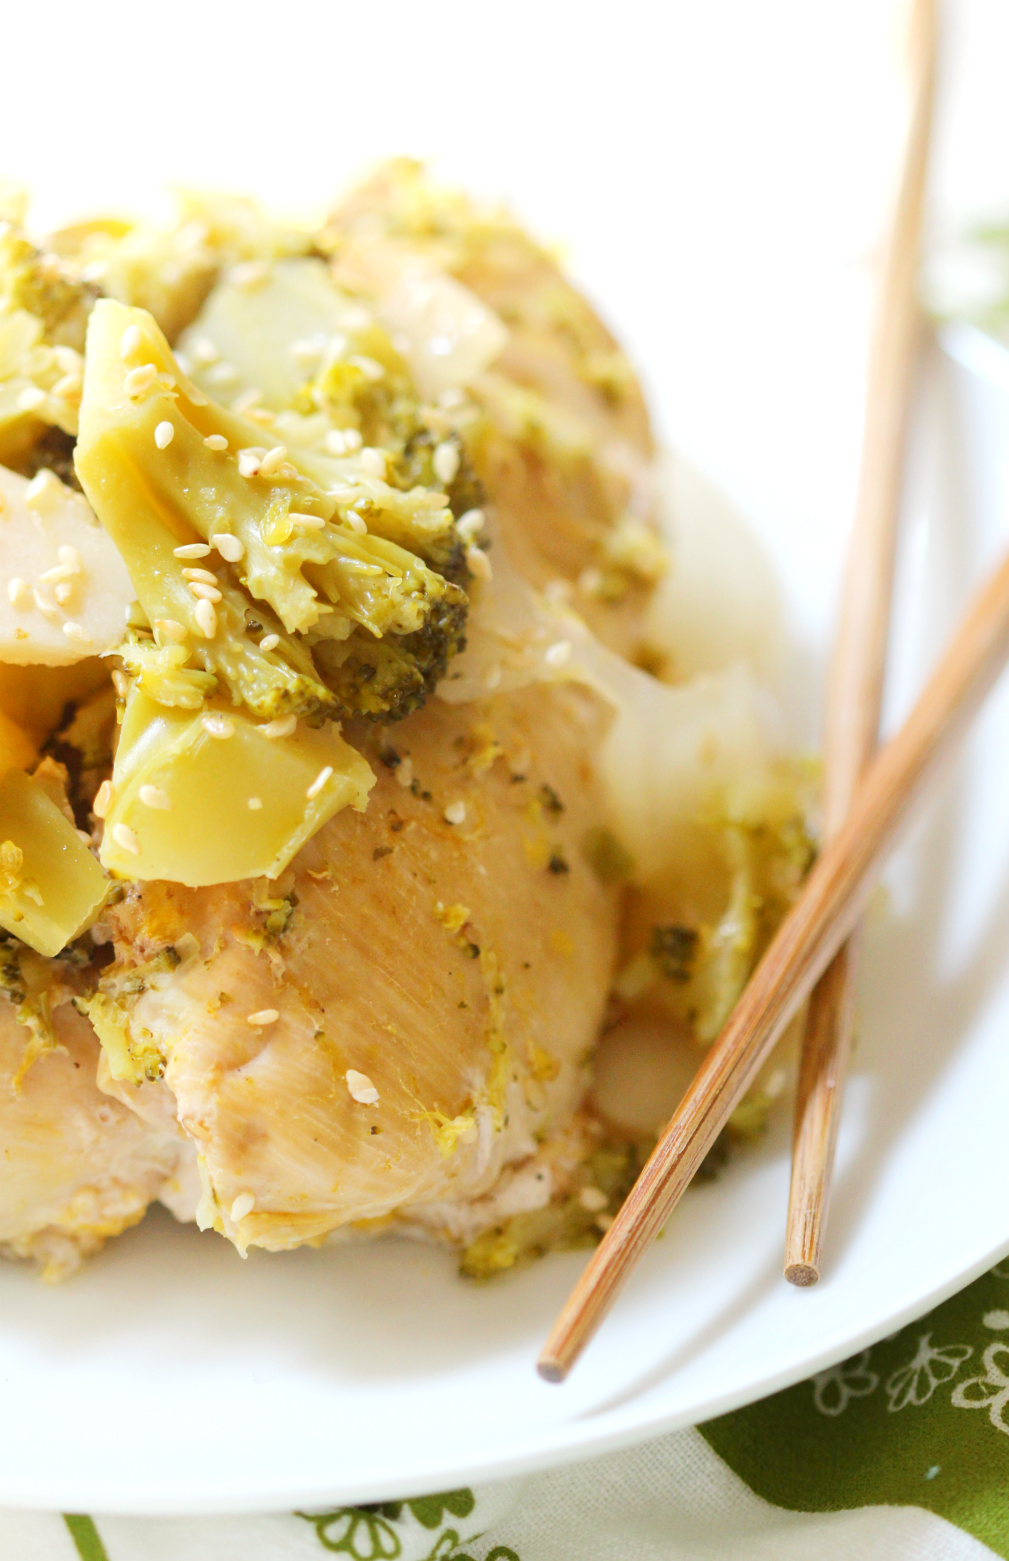 Slow Cooker Orange Sesame Broccoli Chicken | Strength and Sunshine @RebeccaGF666 Classic Asian flavors made easy, gluten-free, & paleo in the slow cooker! Slow cooker orange sesame broccoli chicken is a no-fuss weeknight dinner recipe that will have you leaving take-out at the door!